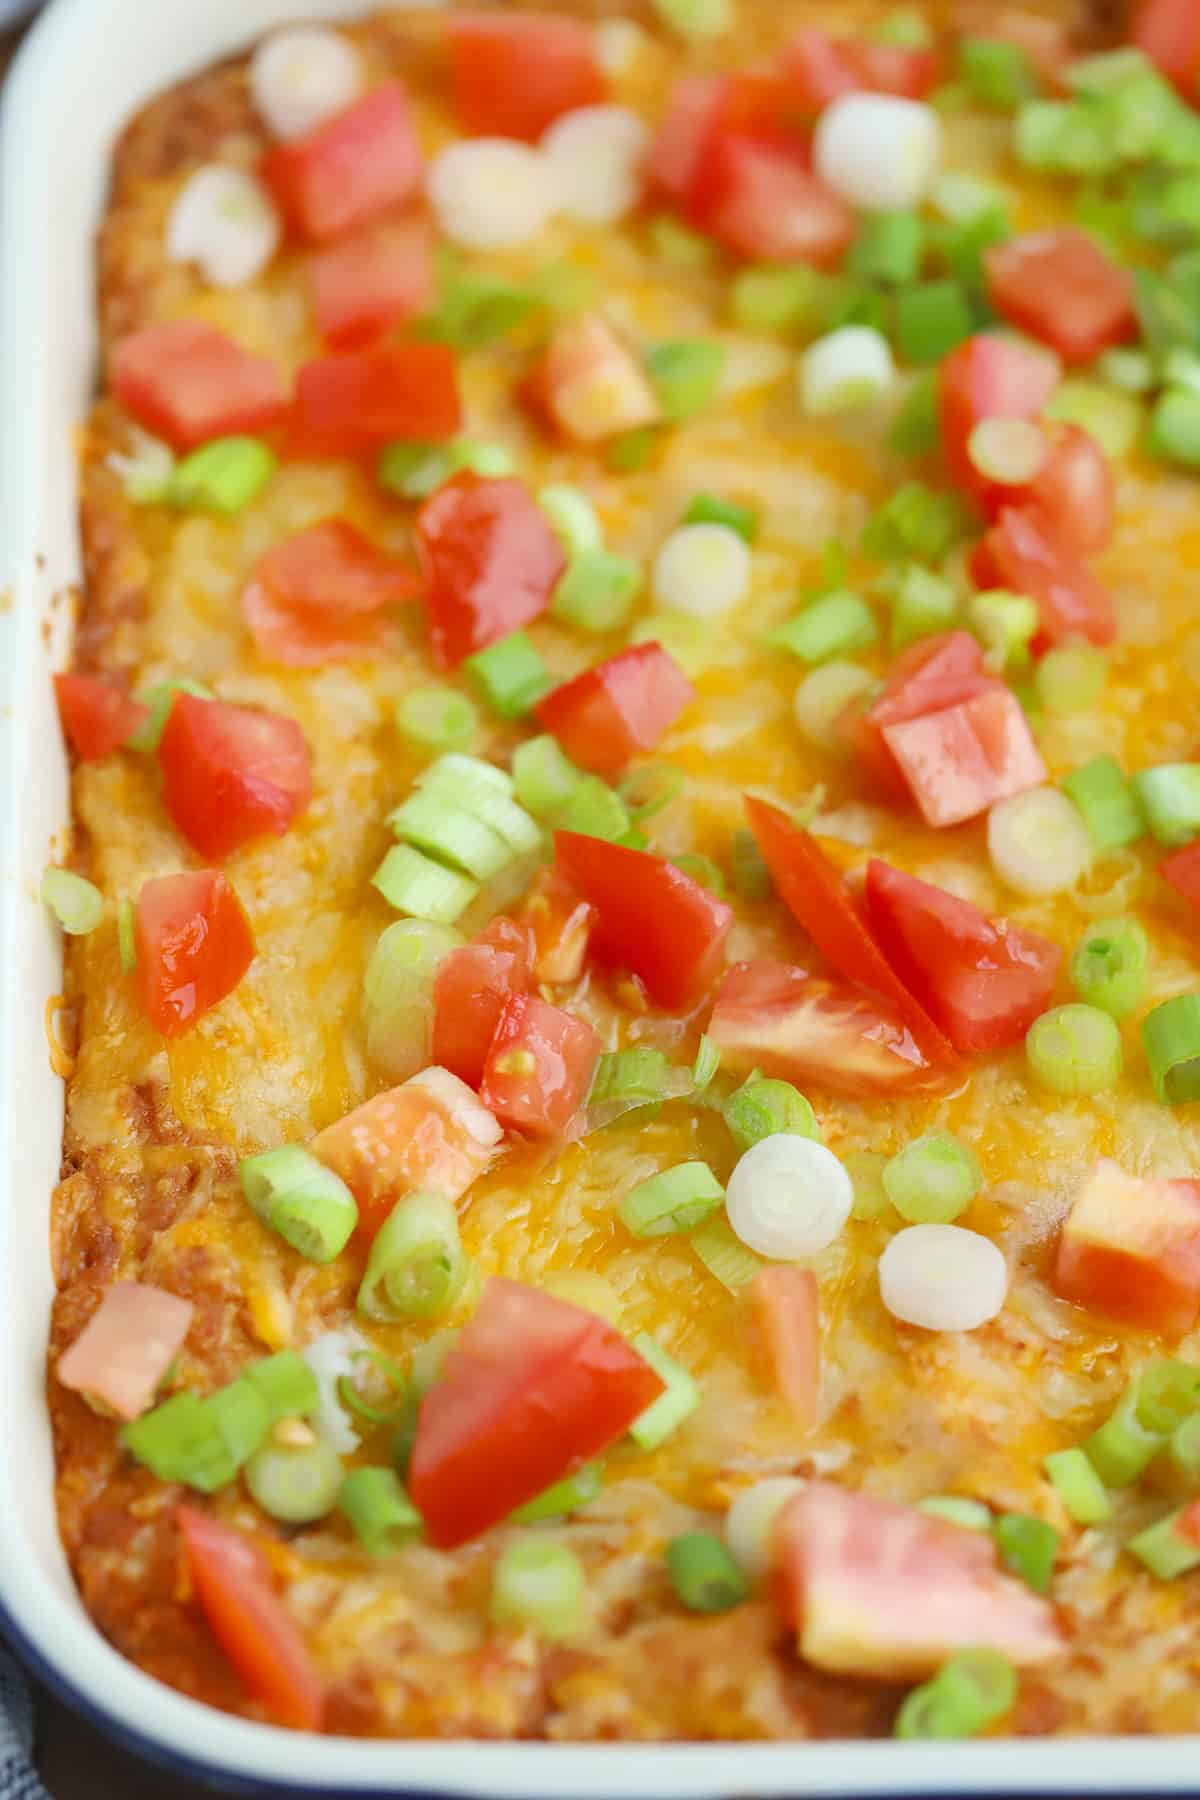 Bean dip baked in a baking dish and topped with tomatoes and green onions.